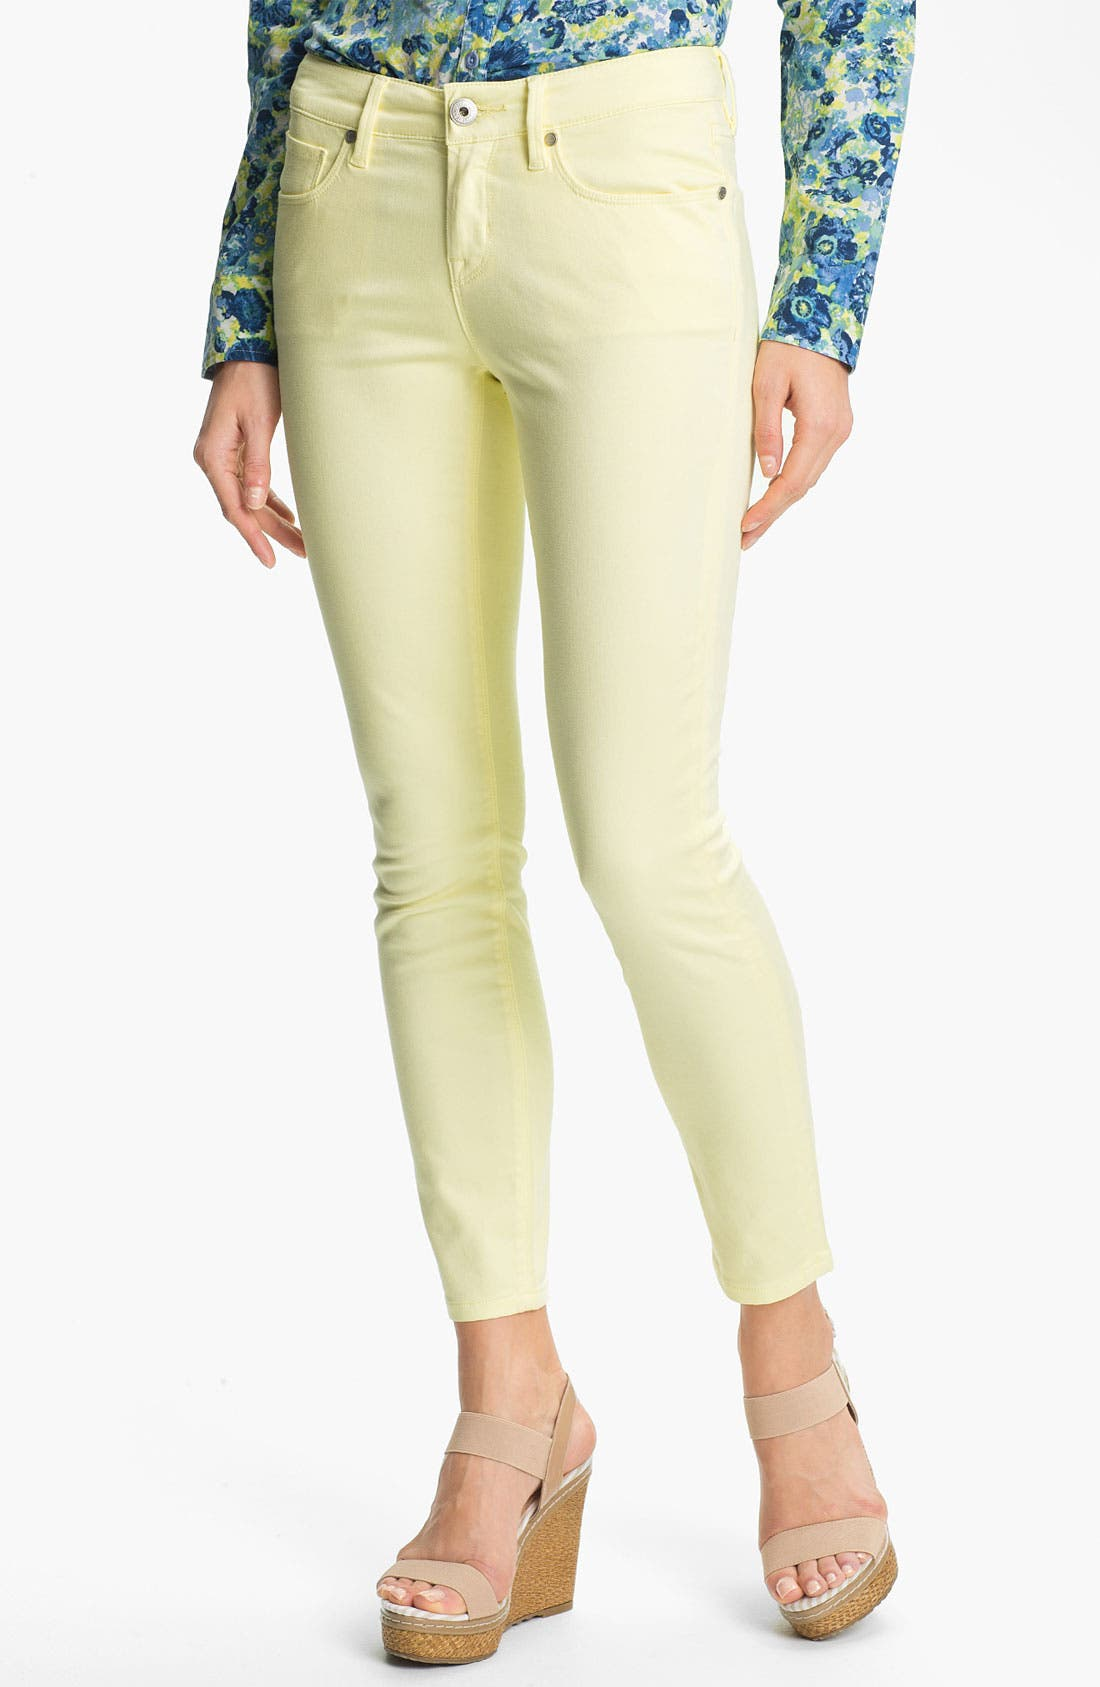 Main Image - Isaac Mizrahi Jeans Colored Skinny Jeans